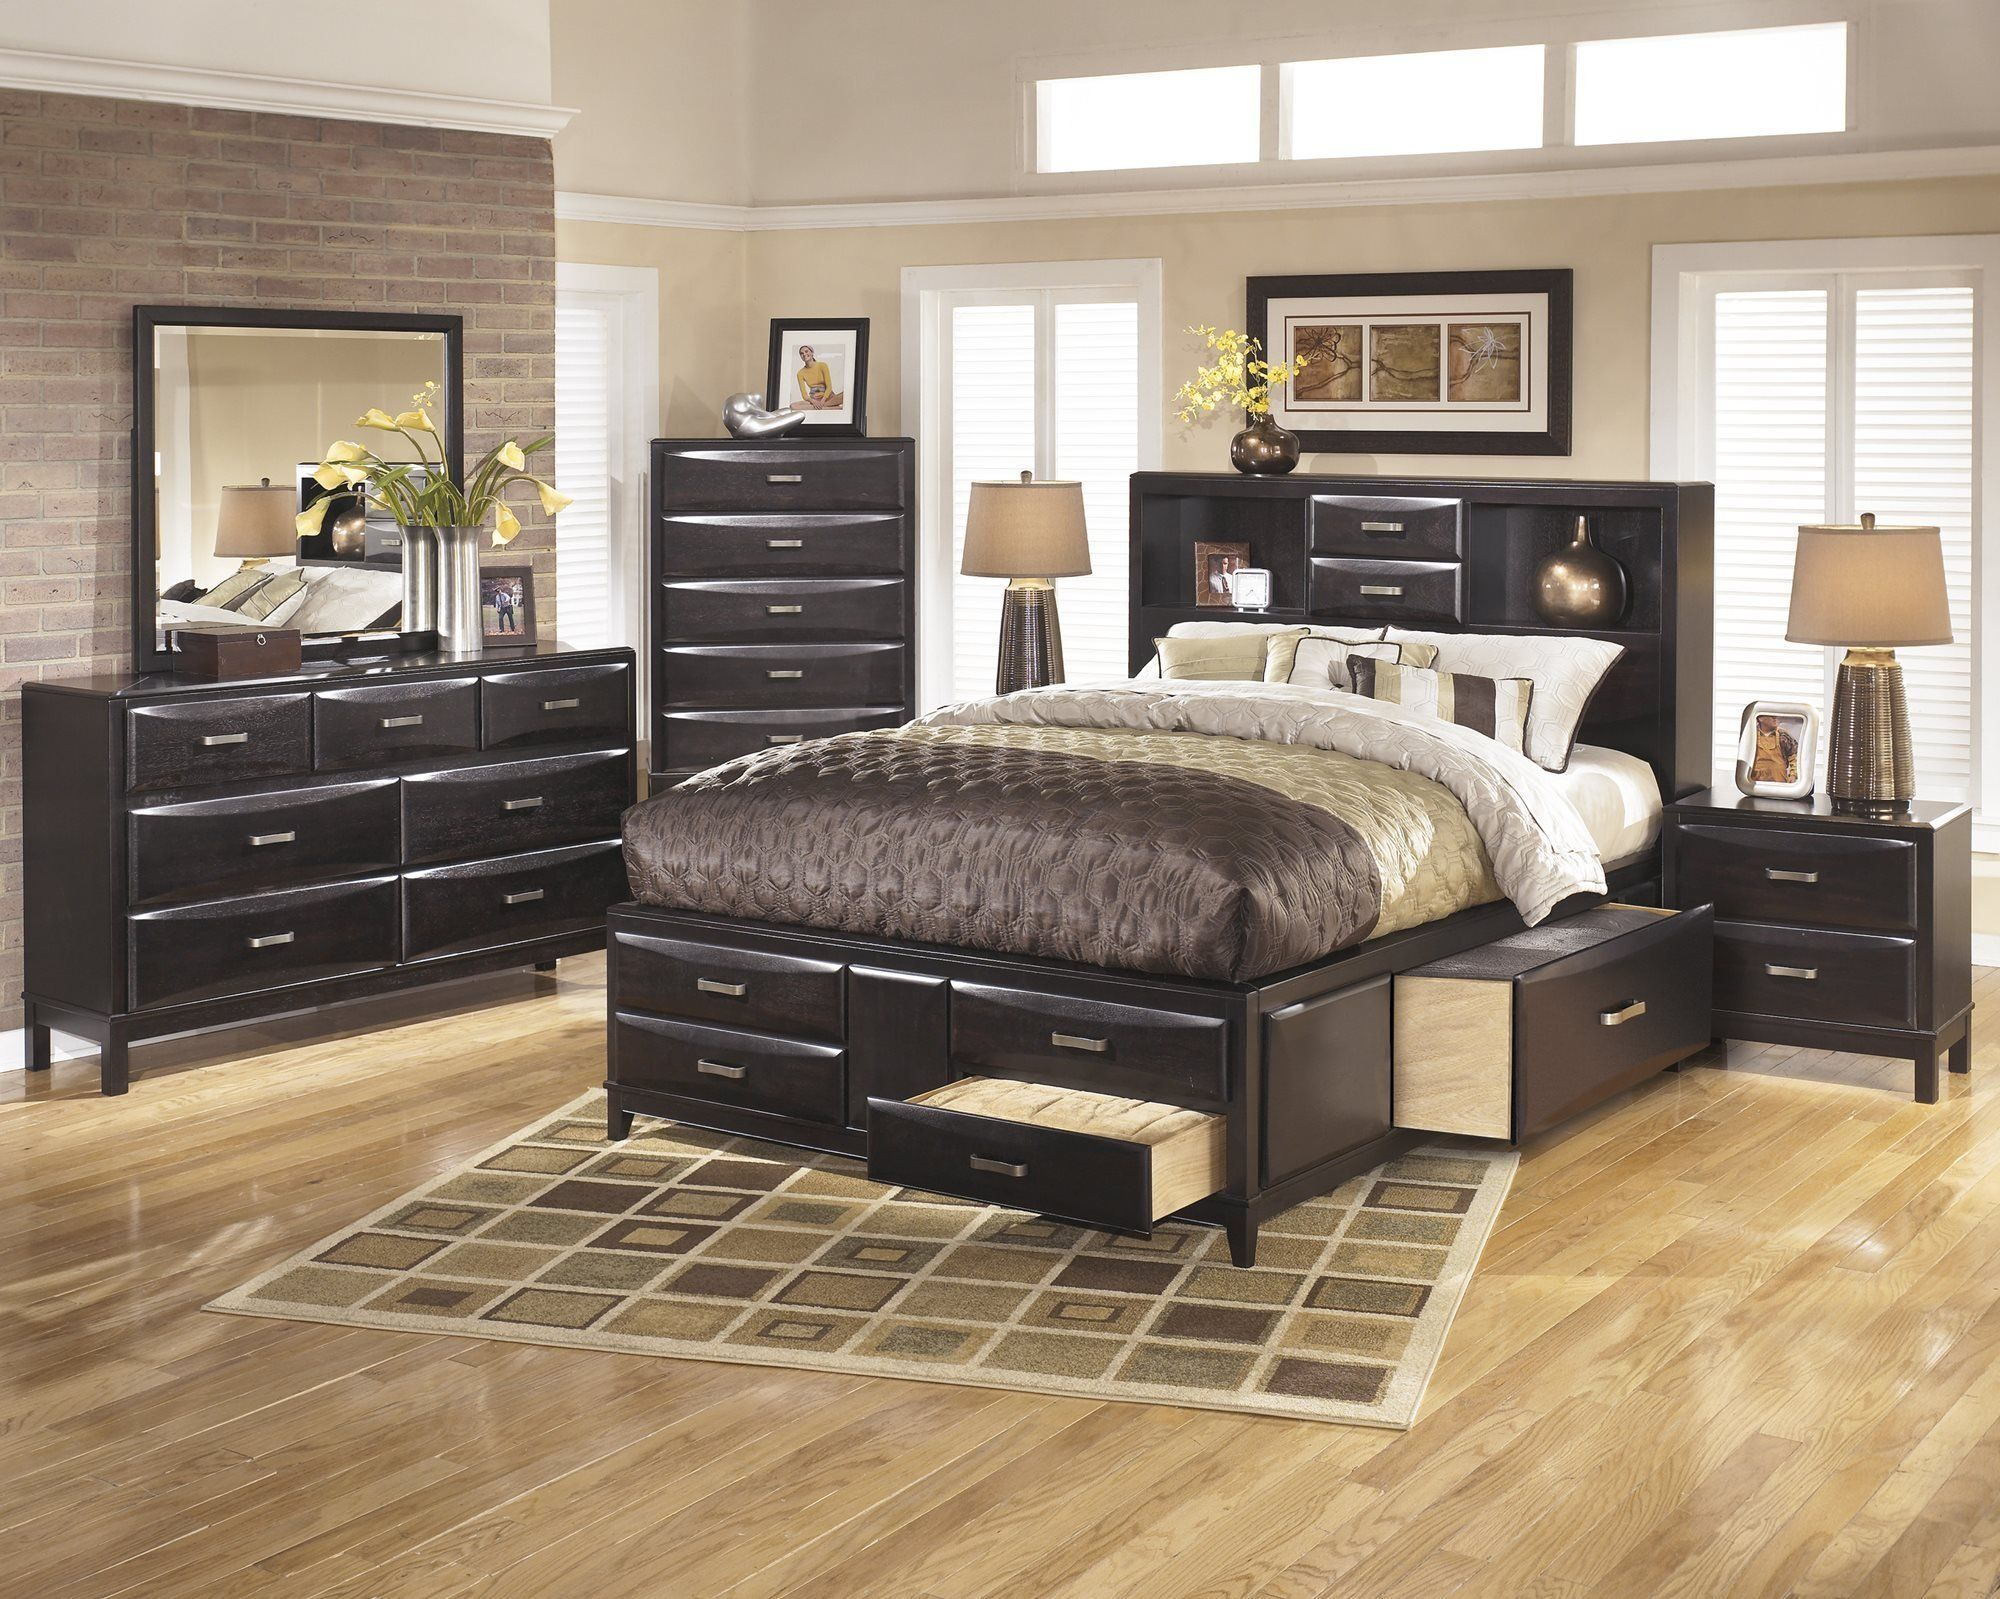 Image of: Kira Queen Storage Bed Reviews Ideas